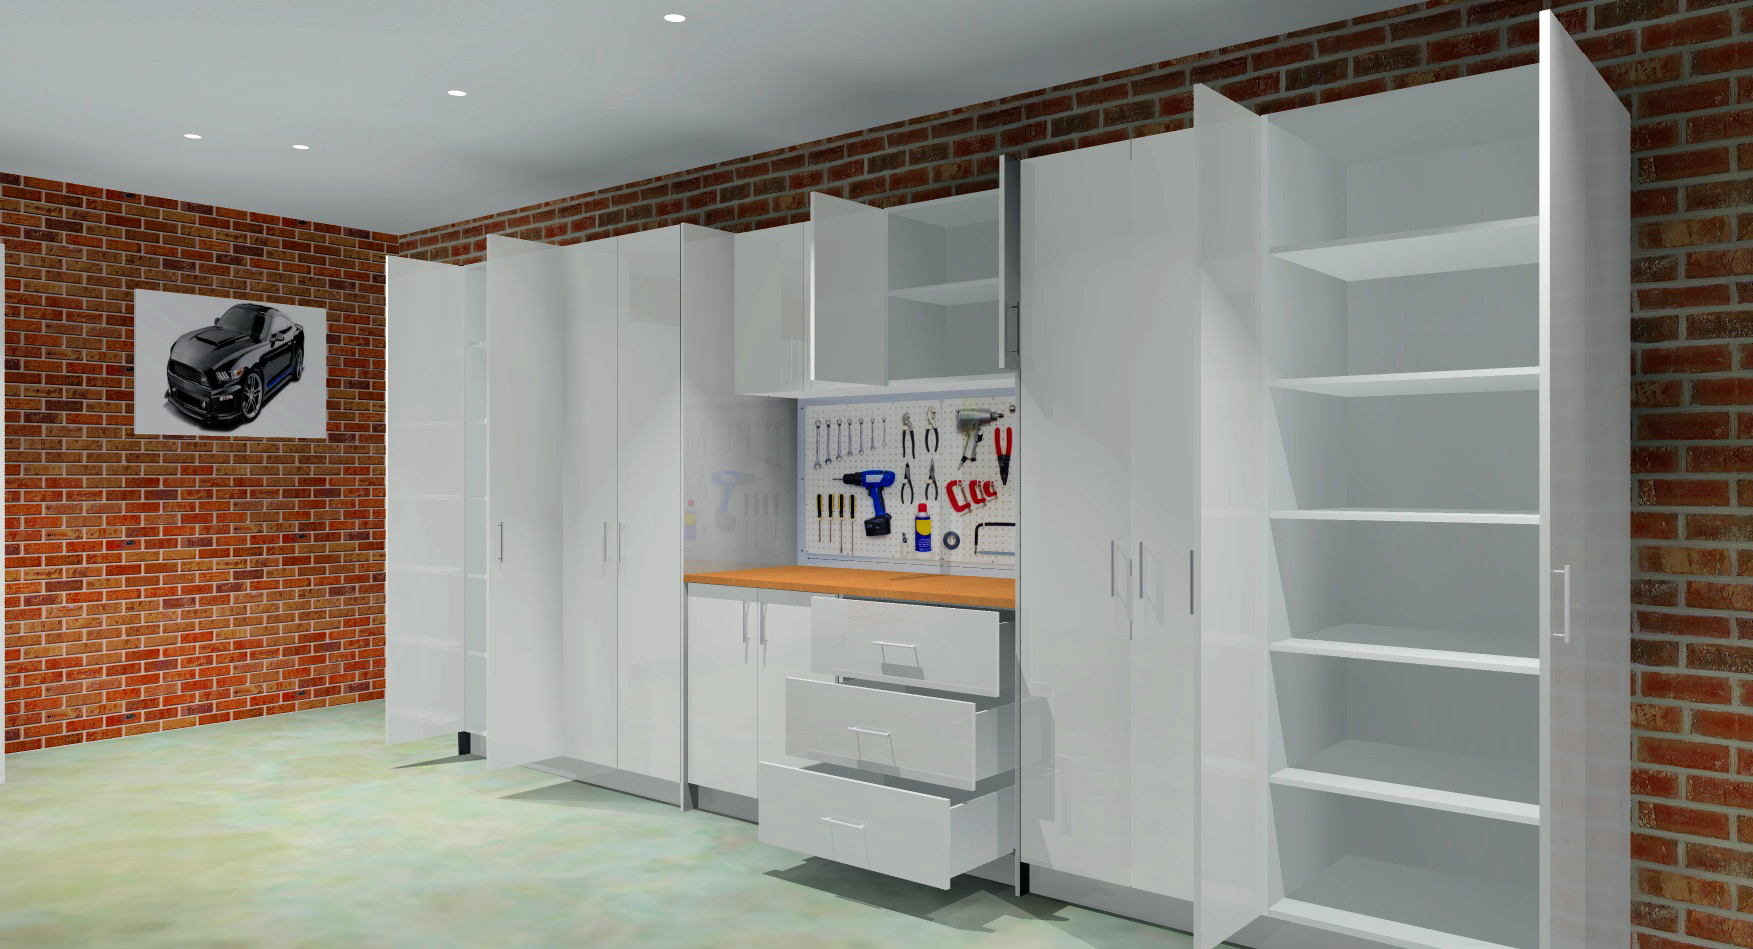 goFlatpacks DIY Shed Storage Render